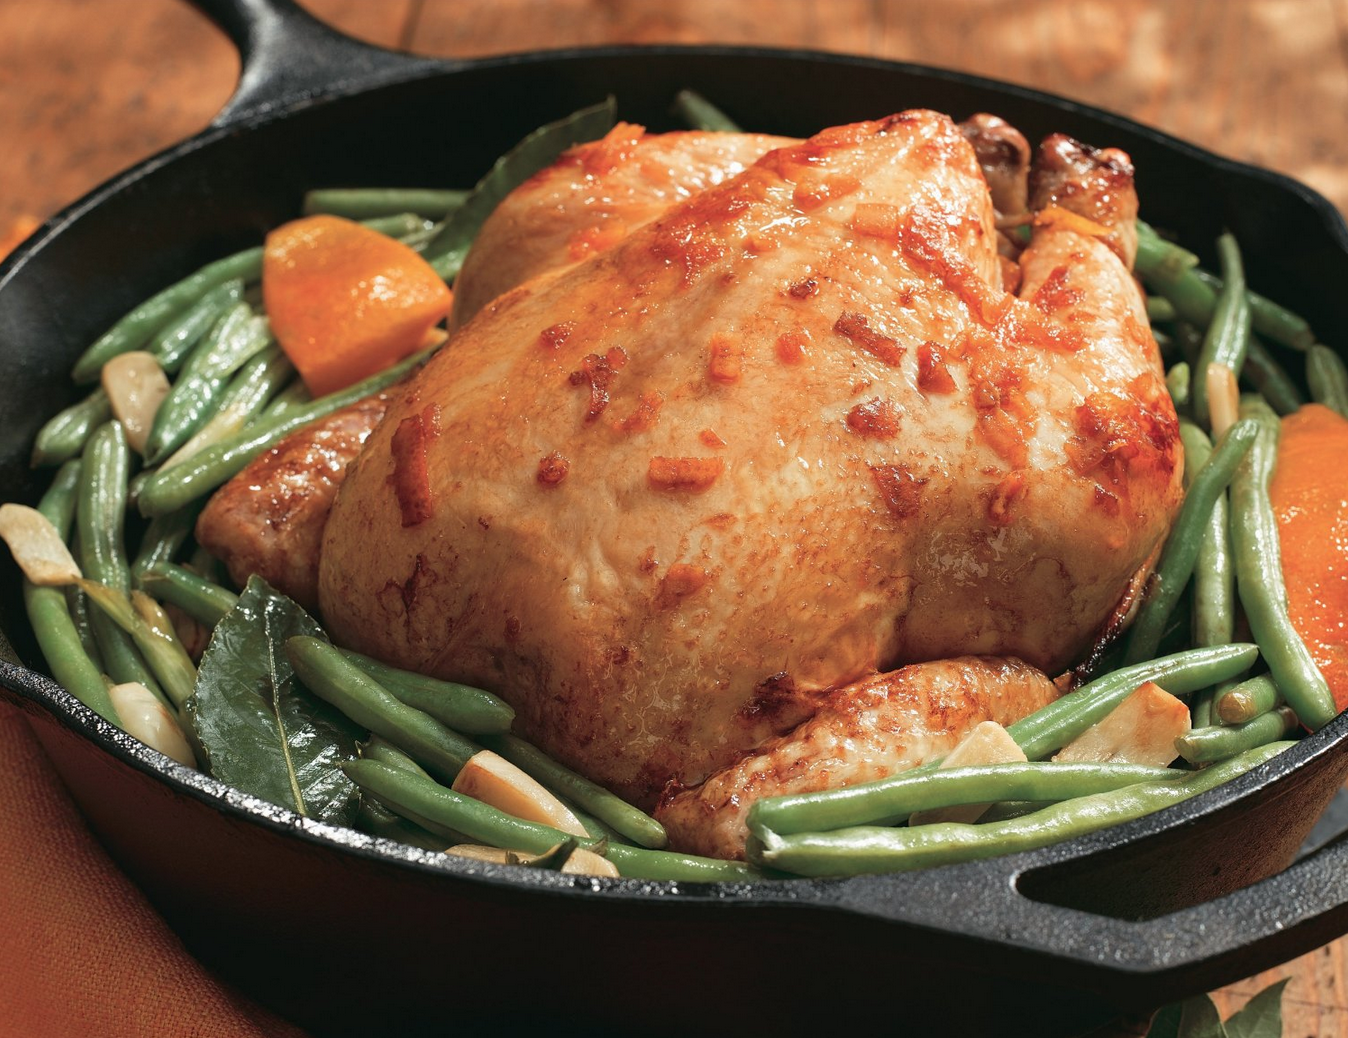 Lodge Pre-Seasoned Cast-Iron 10-inch Chef's Skillet  Only $14.97 (Reg. $26.95!) – Lowest Price!